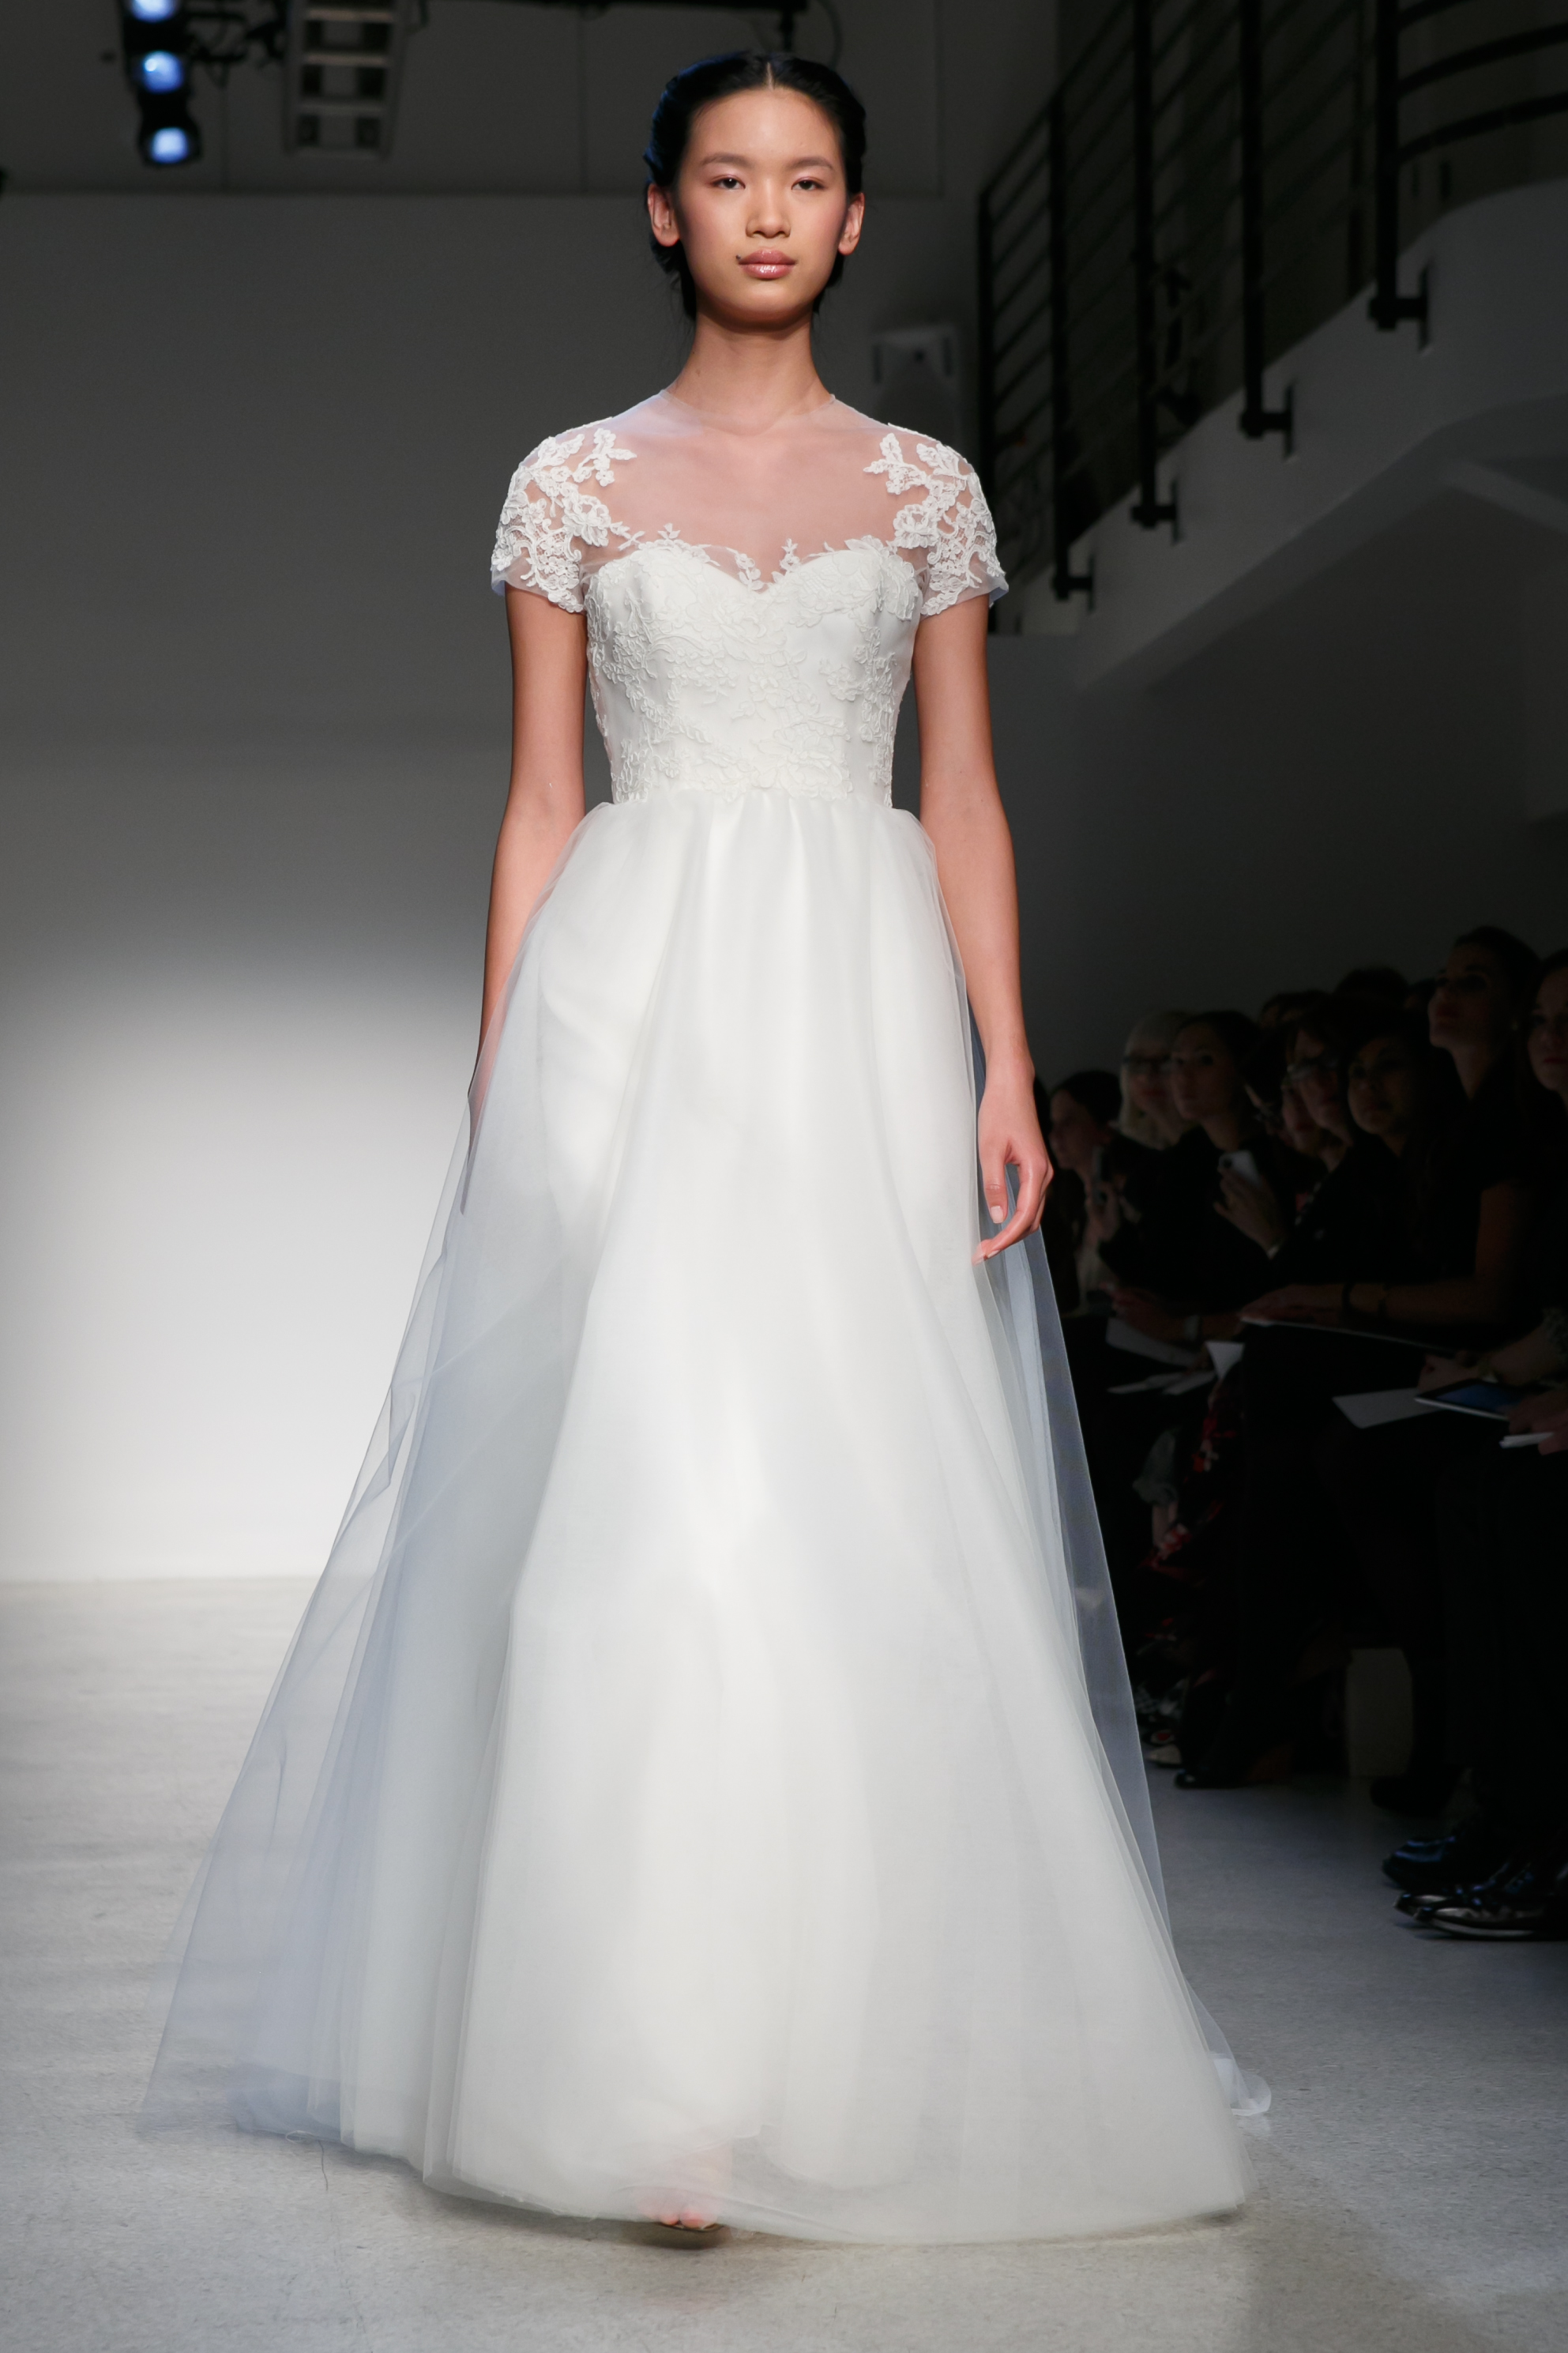 Fall-2013-wedding-dress-by-christos-amsale-bridal-1.original